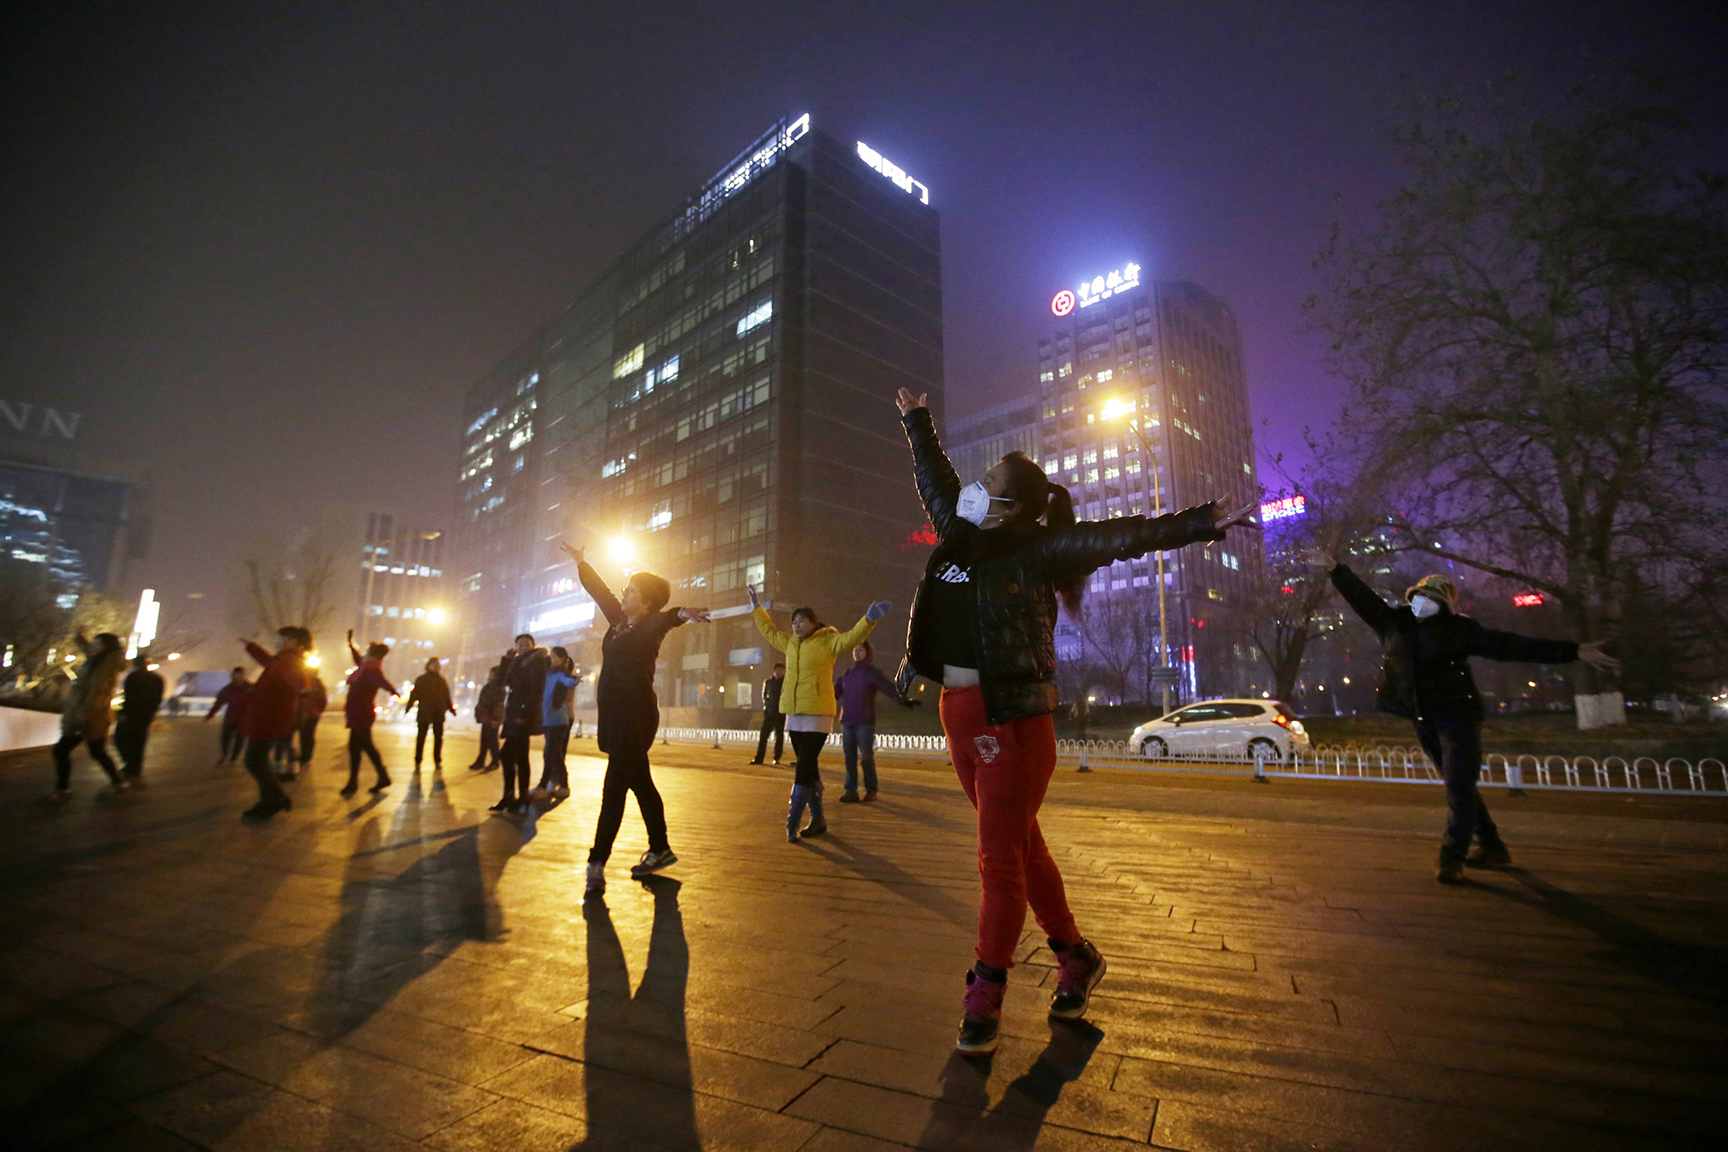 Women wearing masks and other residents dance during their daily exercise amid the heavy smog in Beijing